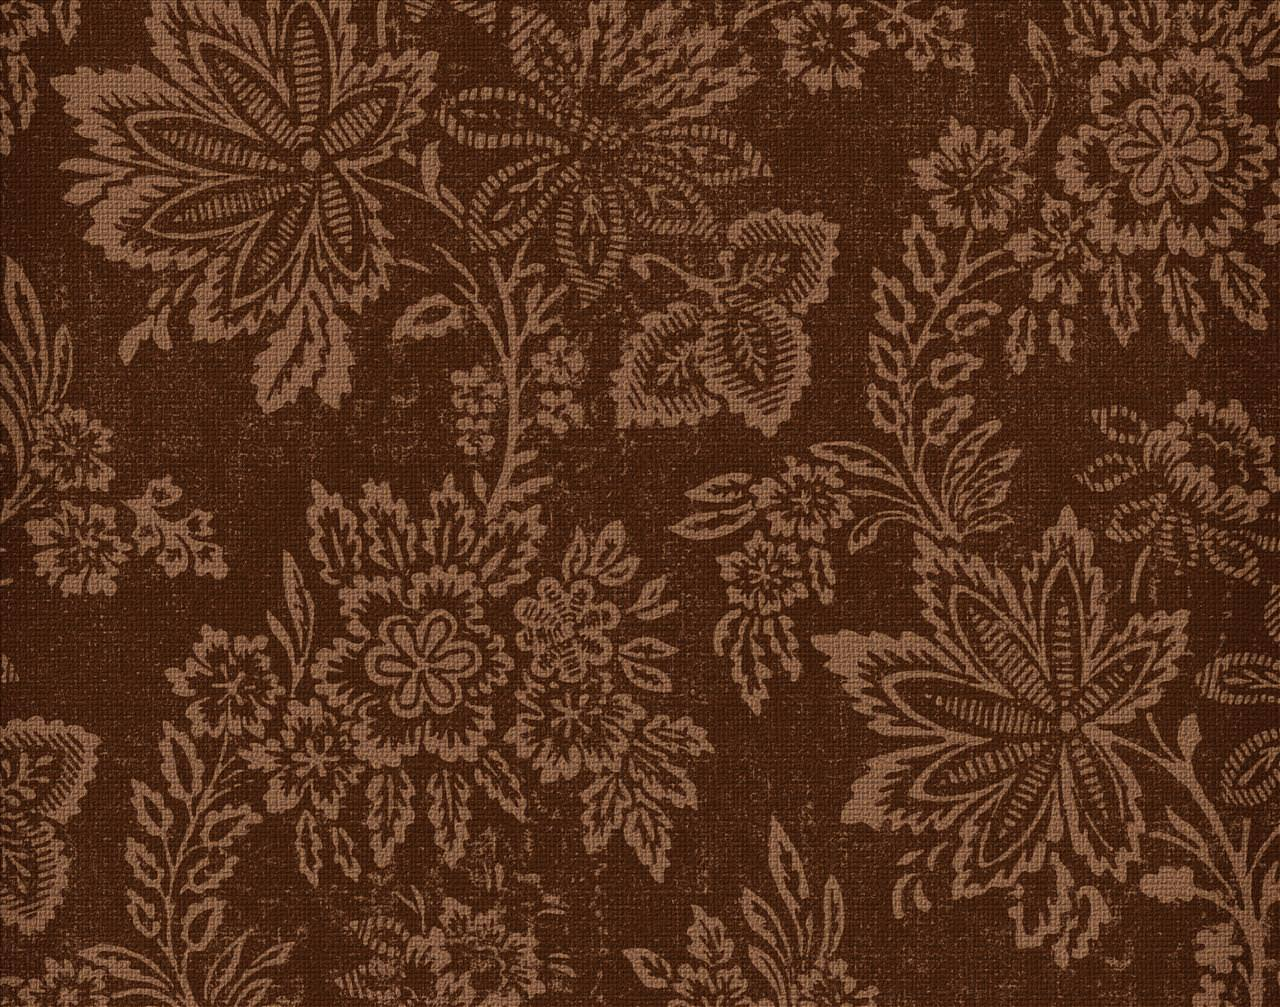 brown backgrounds9